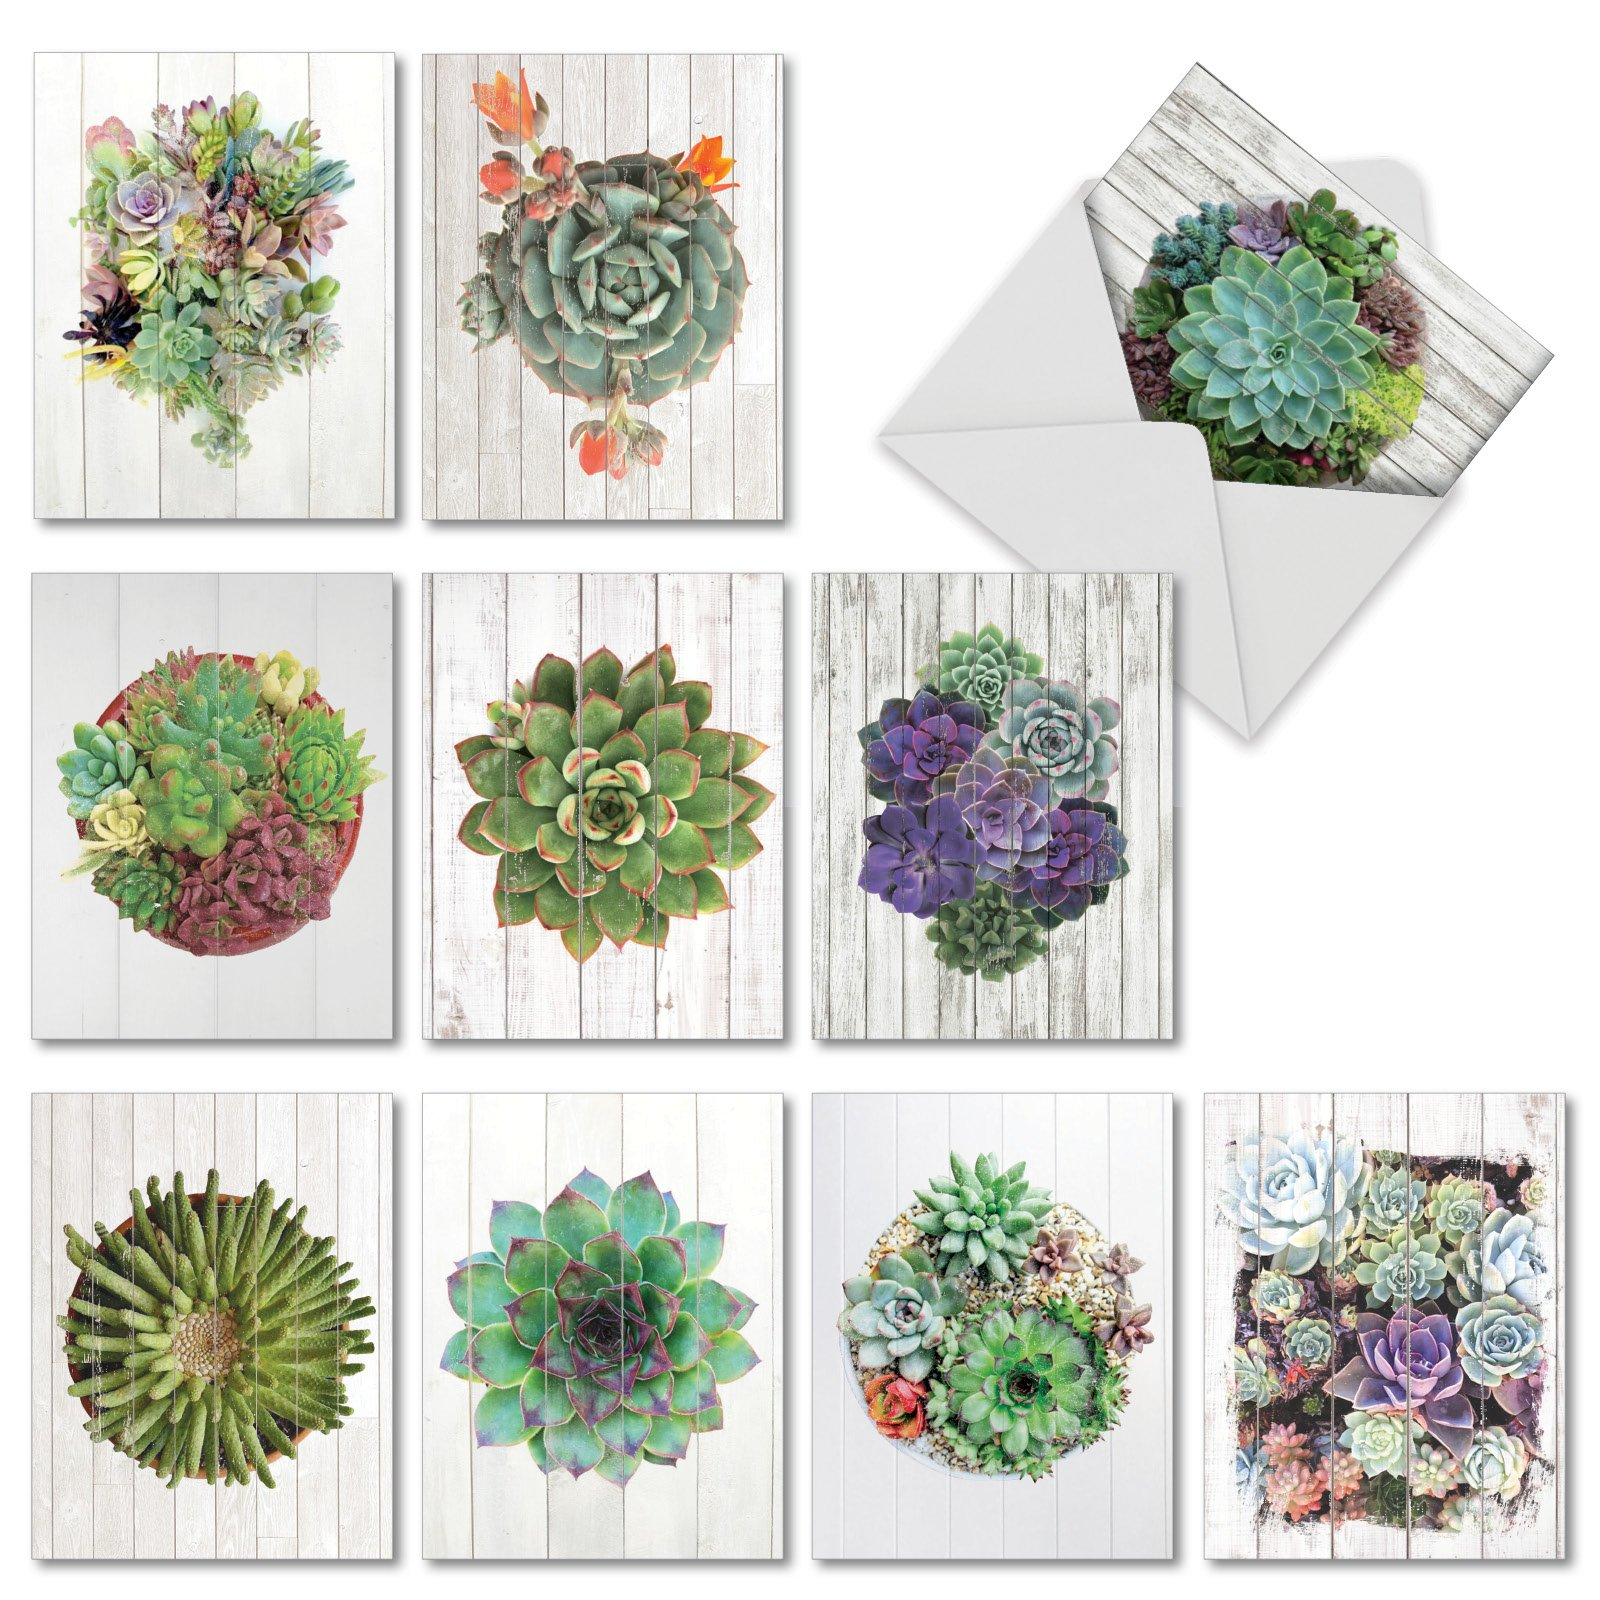 Shiplap Succulents - 10 All Occasion Note Cards with Envelope (4 x 5.12 Inch) - Assorted Colorful Plants, Greeting Cards for Plant Lovers - Nature Stationery Notecard Pack Set AM6438OCB-B1x10